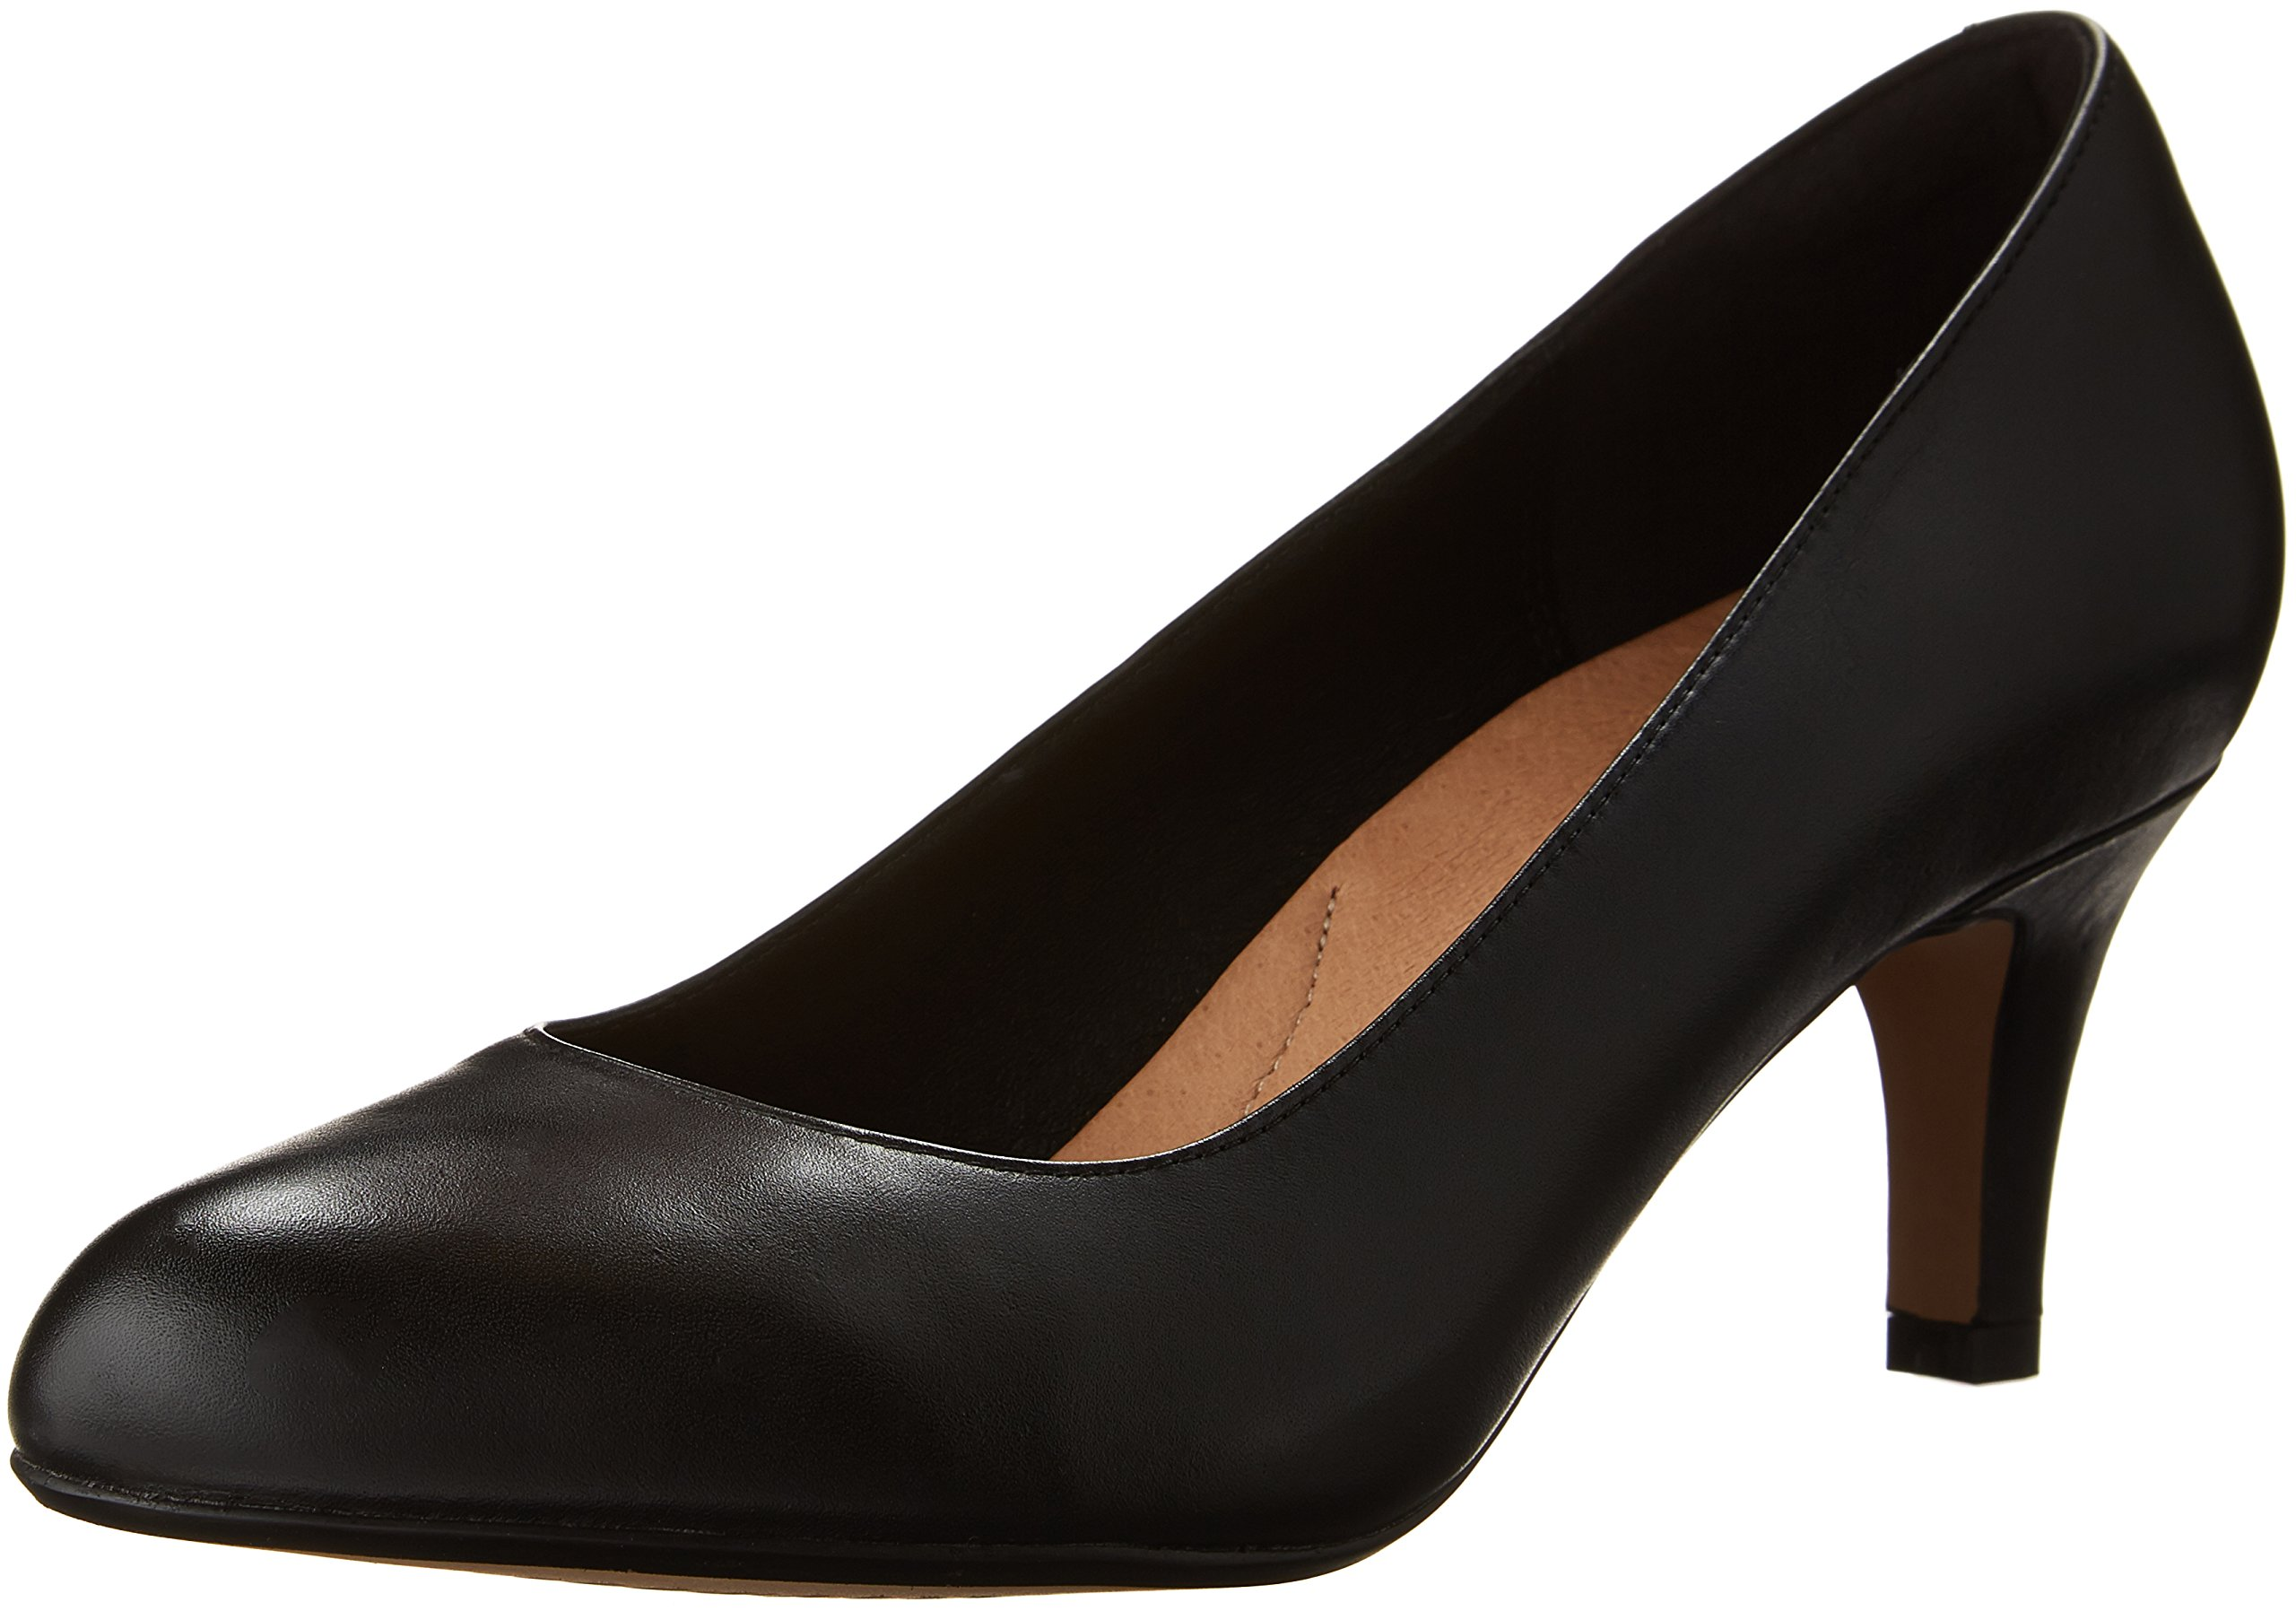 Clarks Women's Heavenly Heart Dress Pump, Black Leather, 8 W US